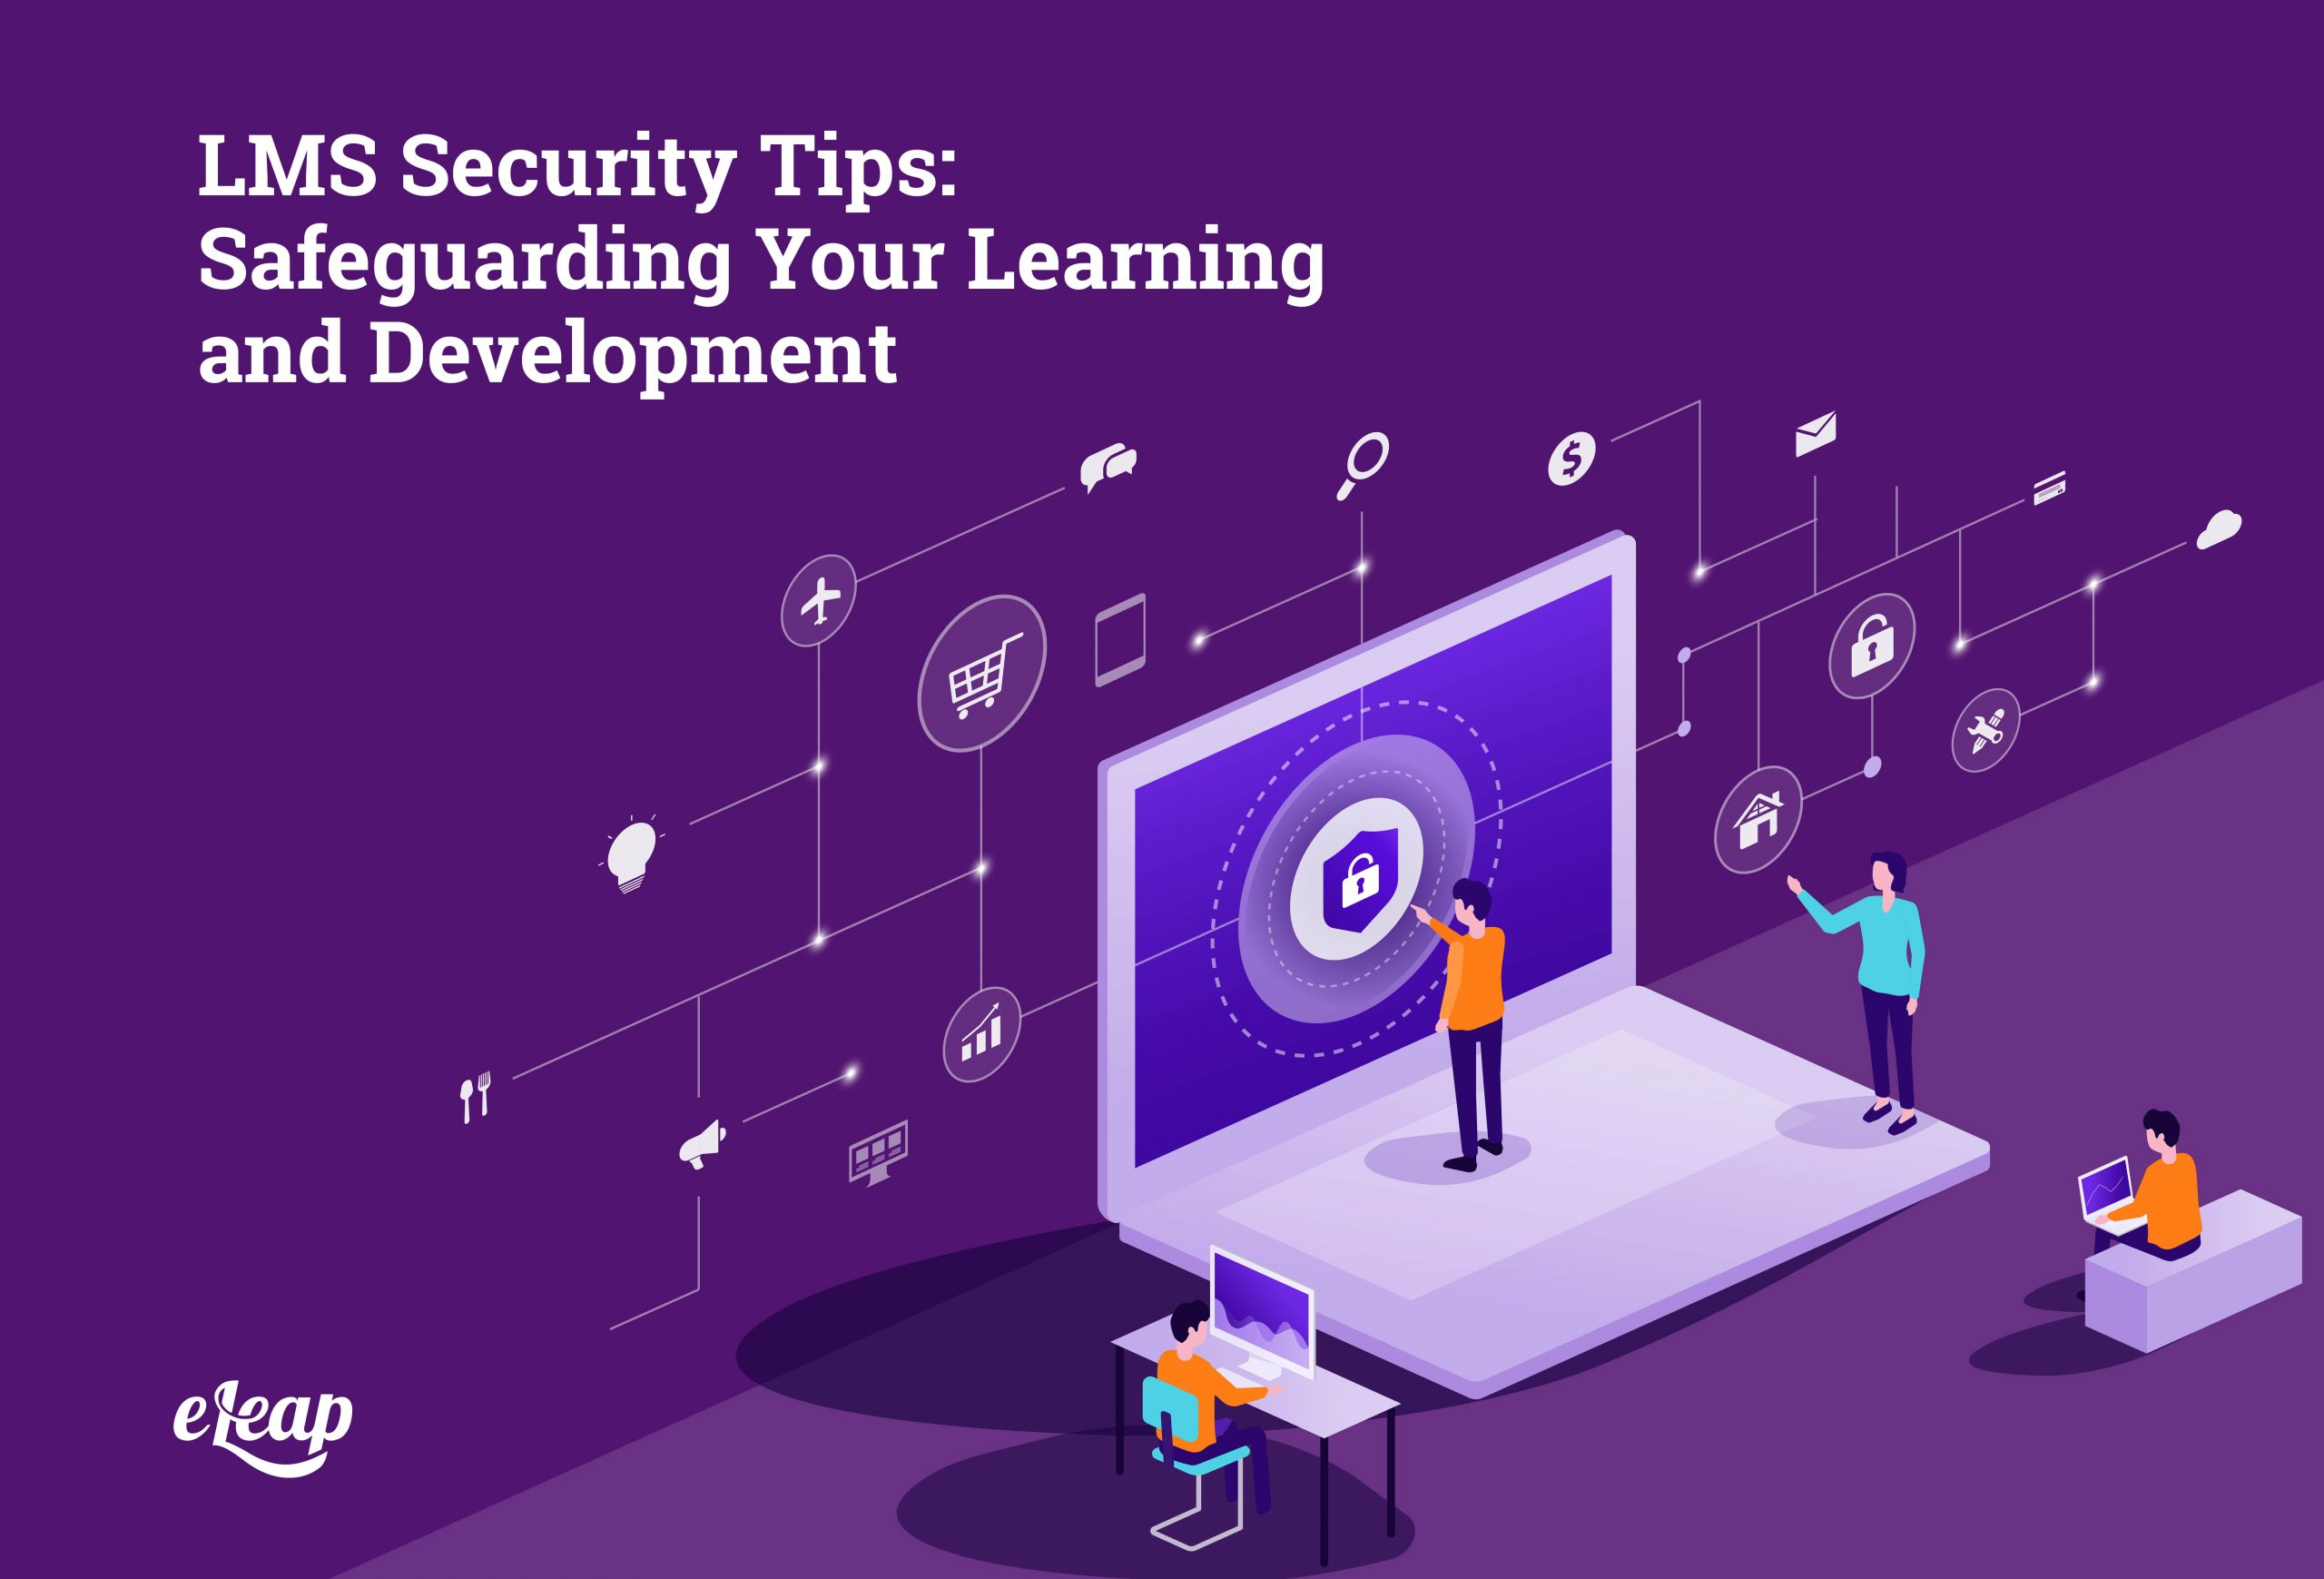 LMS Security Tips: Safeguarding Your Learning and Development